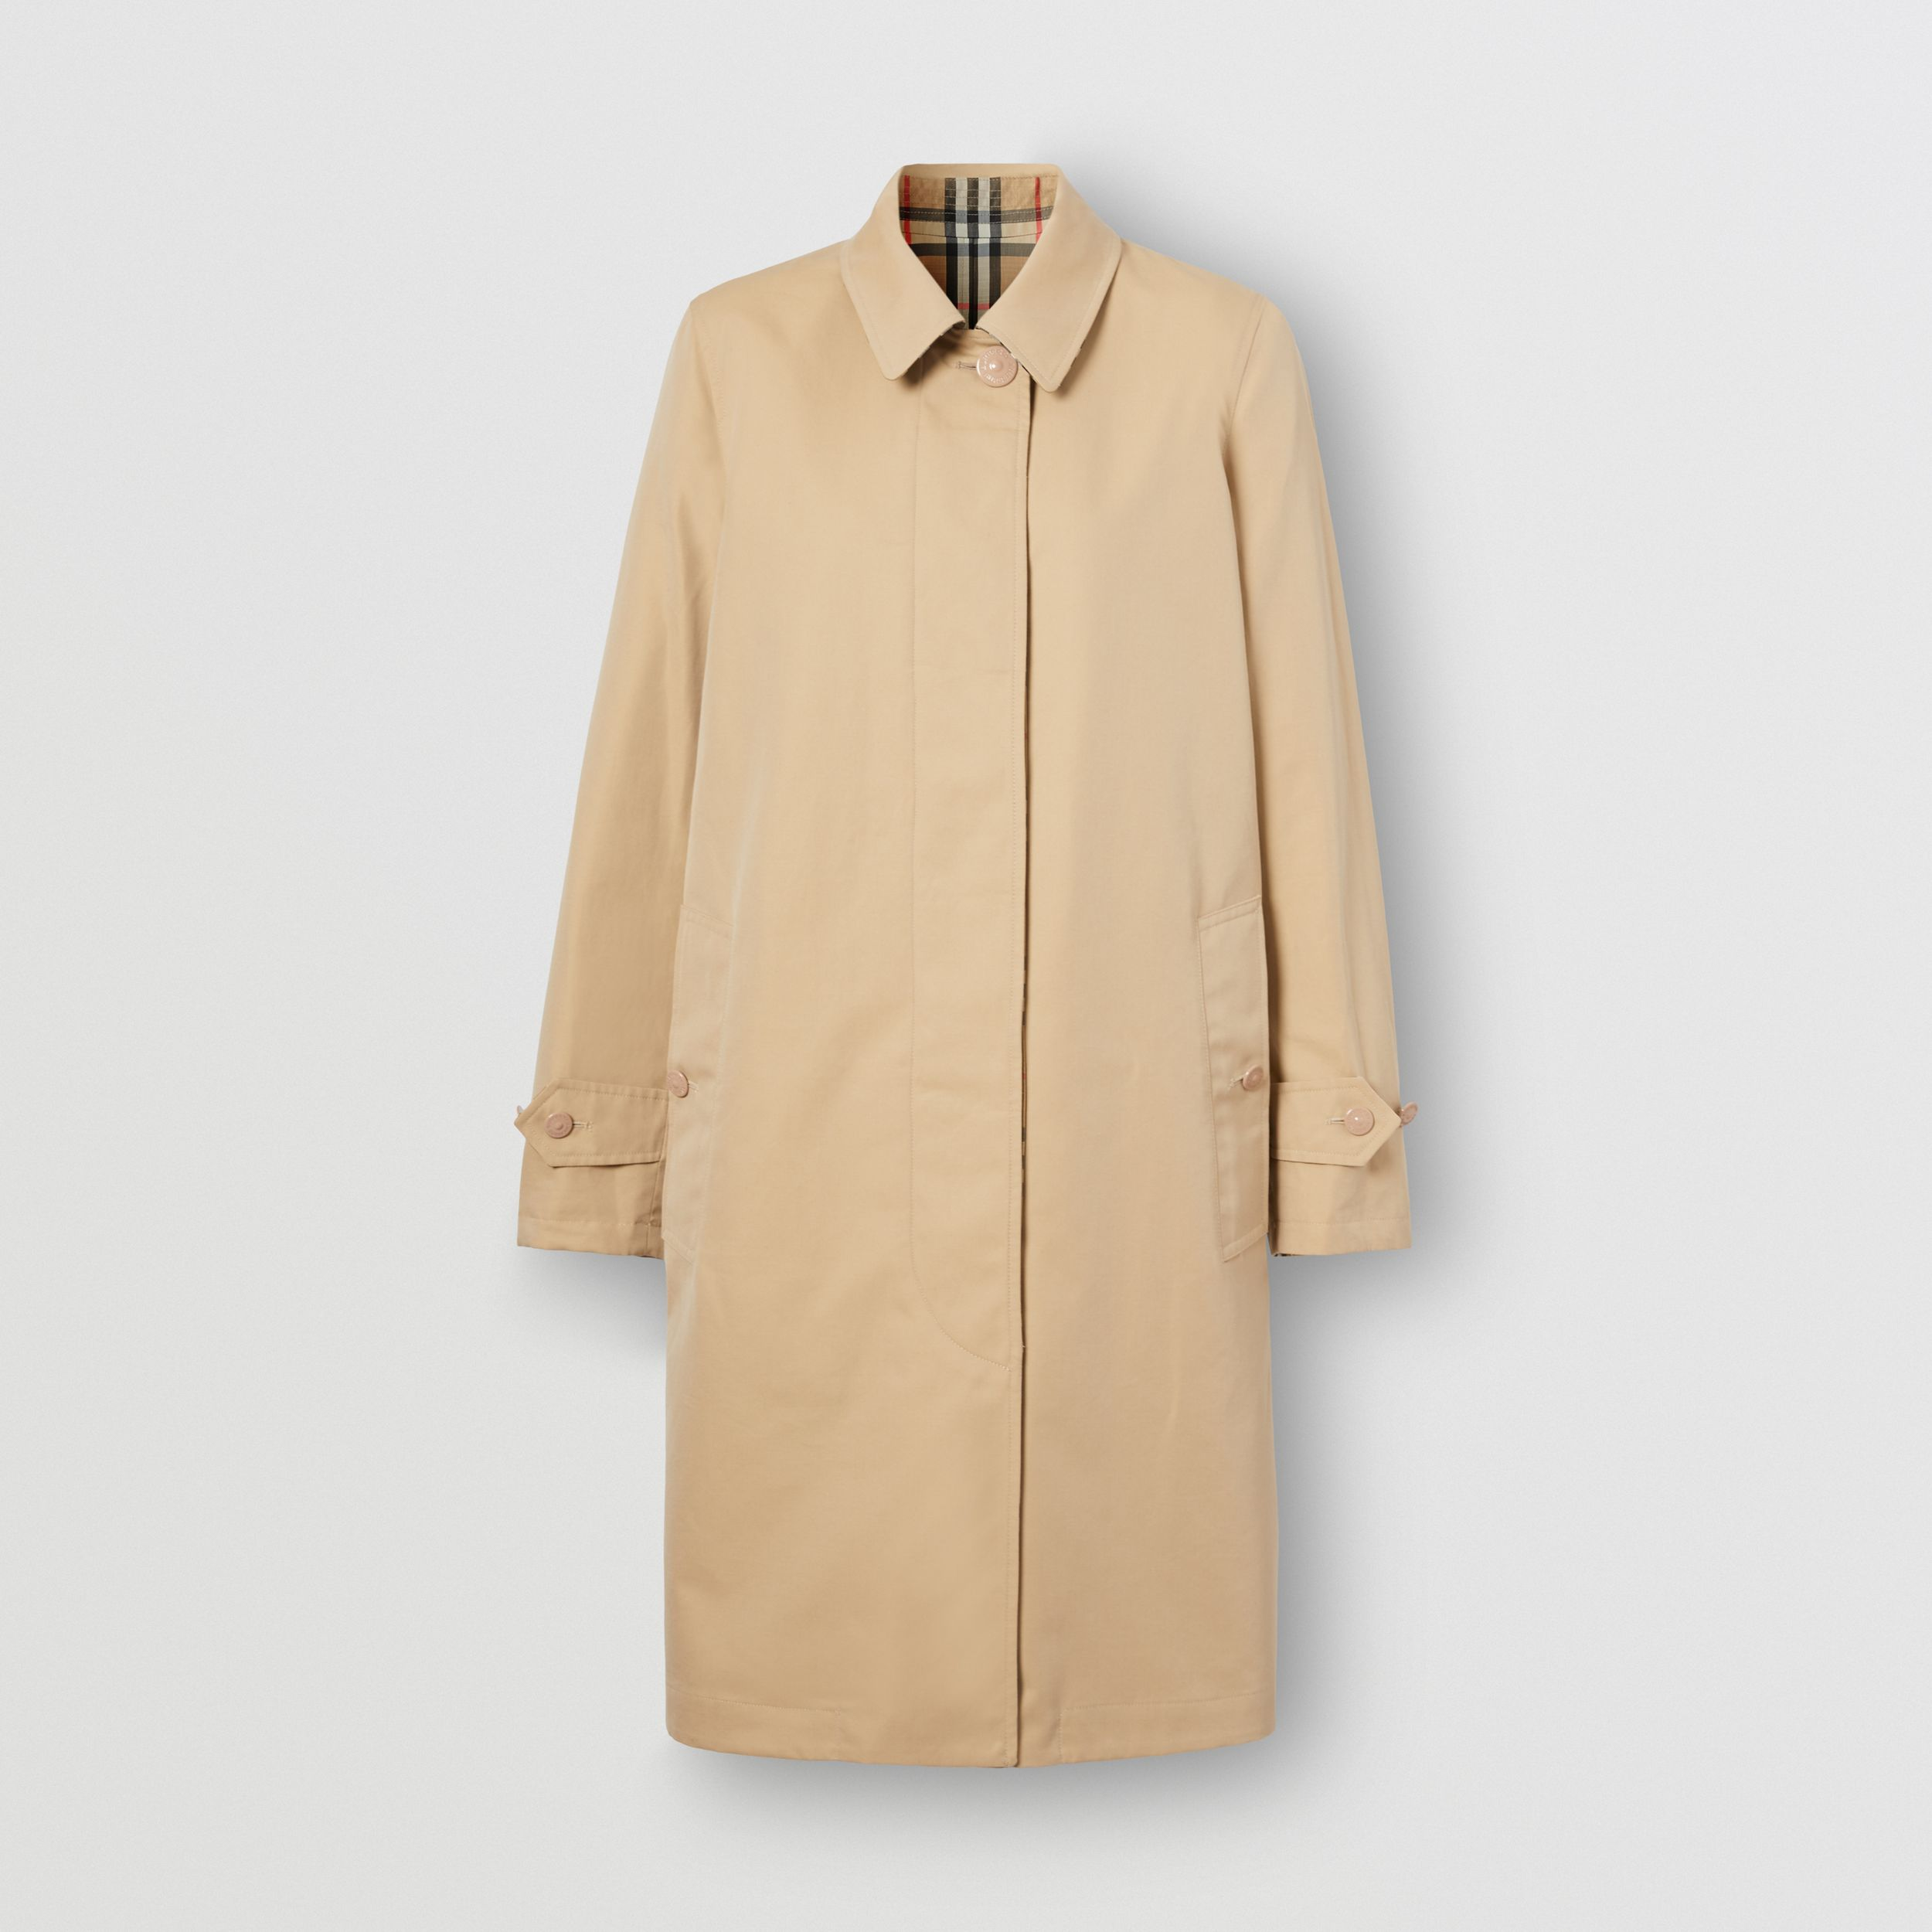 Reversible Cotton and Vintage Check Car Coat in Honey - Women | Burberry - 4